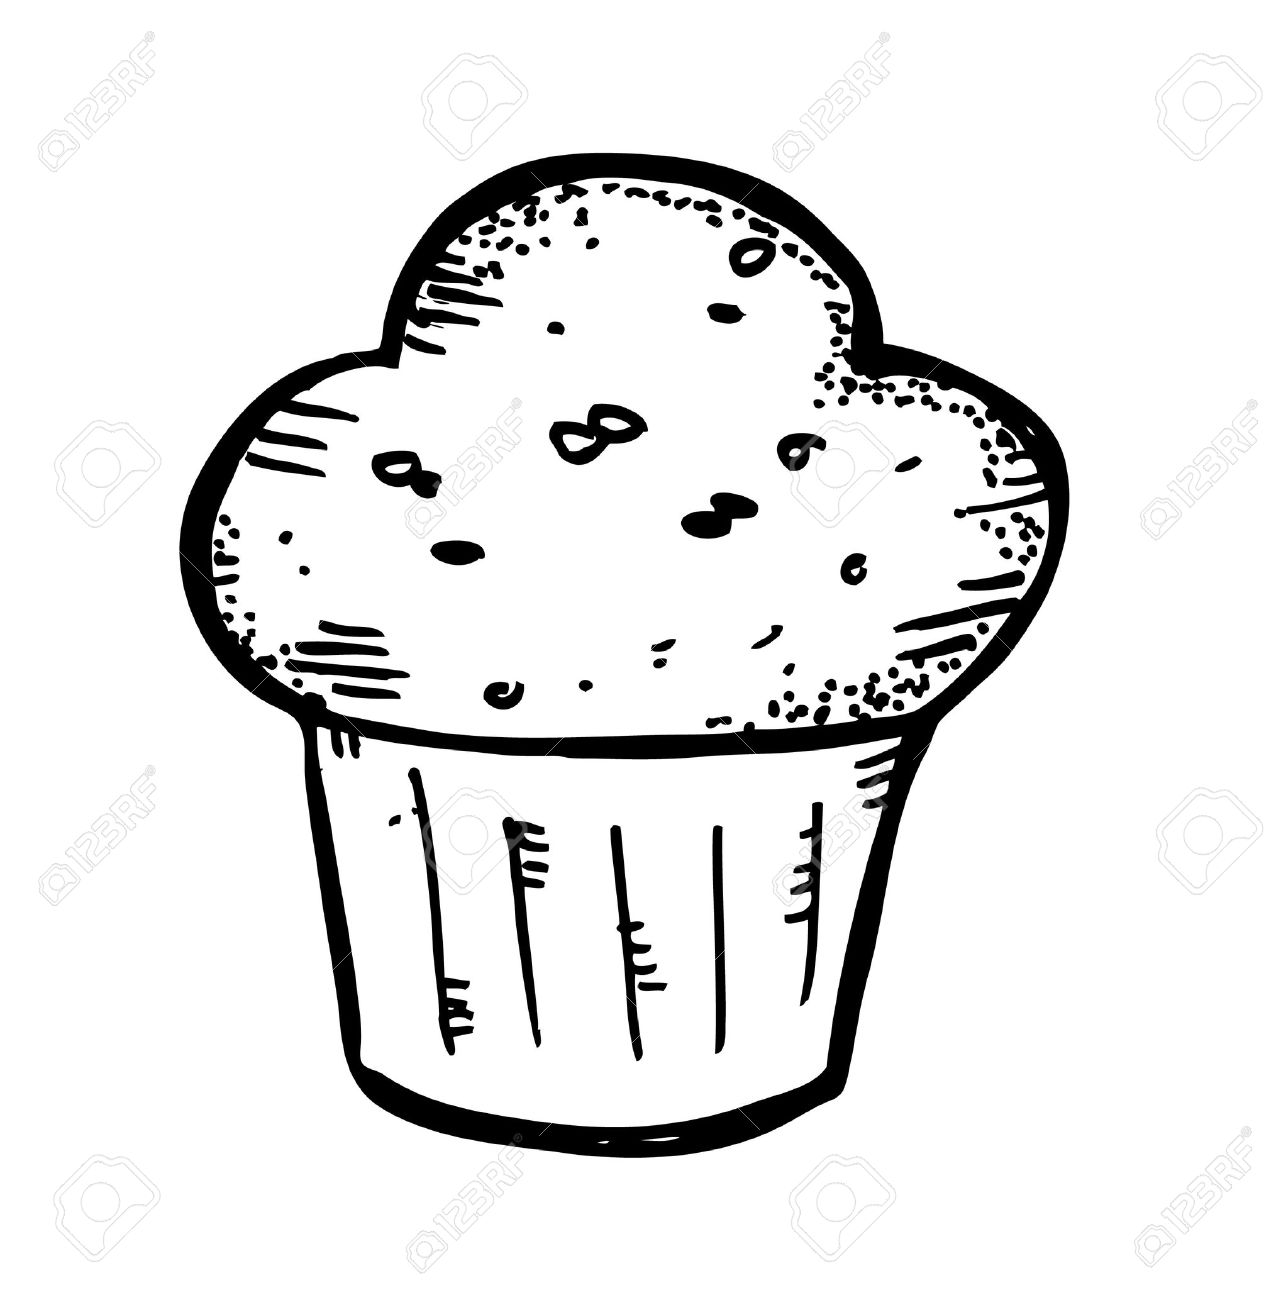 Black and white muffin clipart vector black and white Muffin clipart black and white 4 » Clipart Station vector black and white